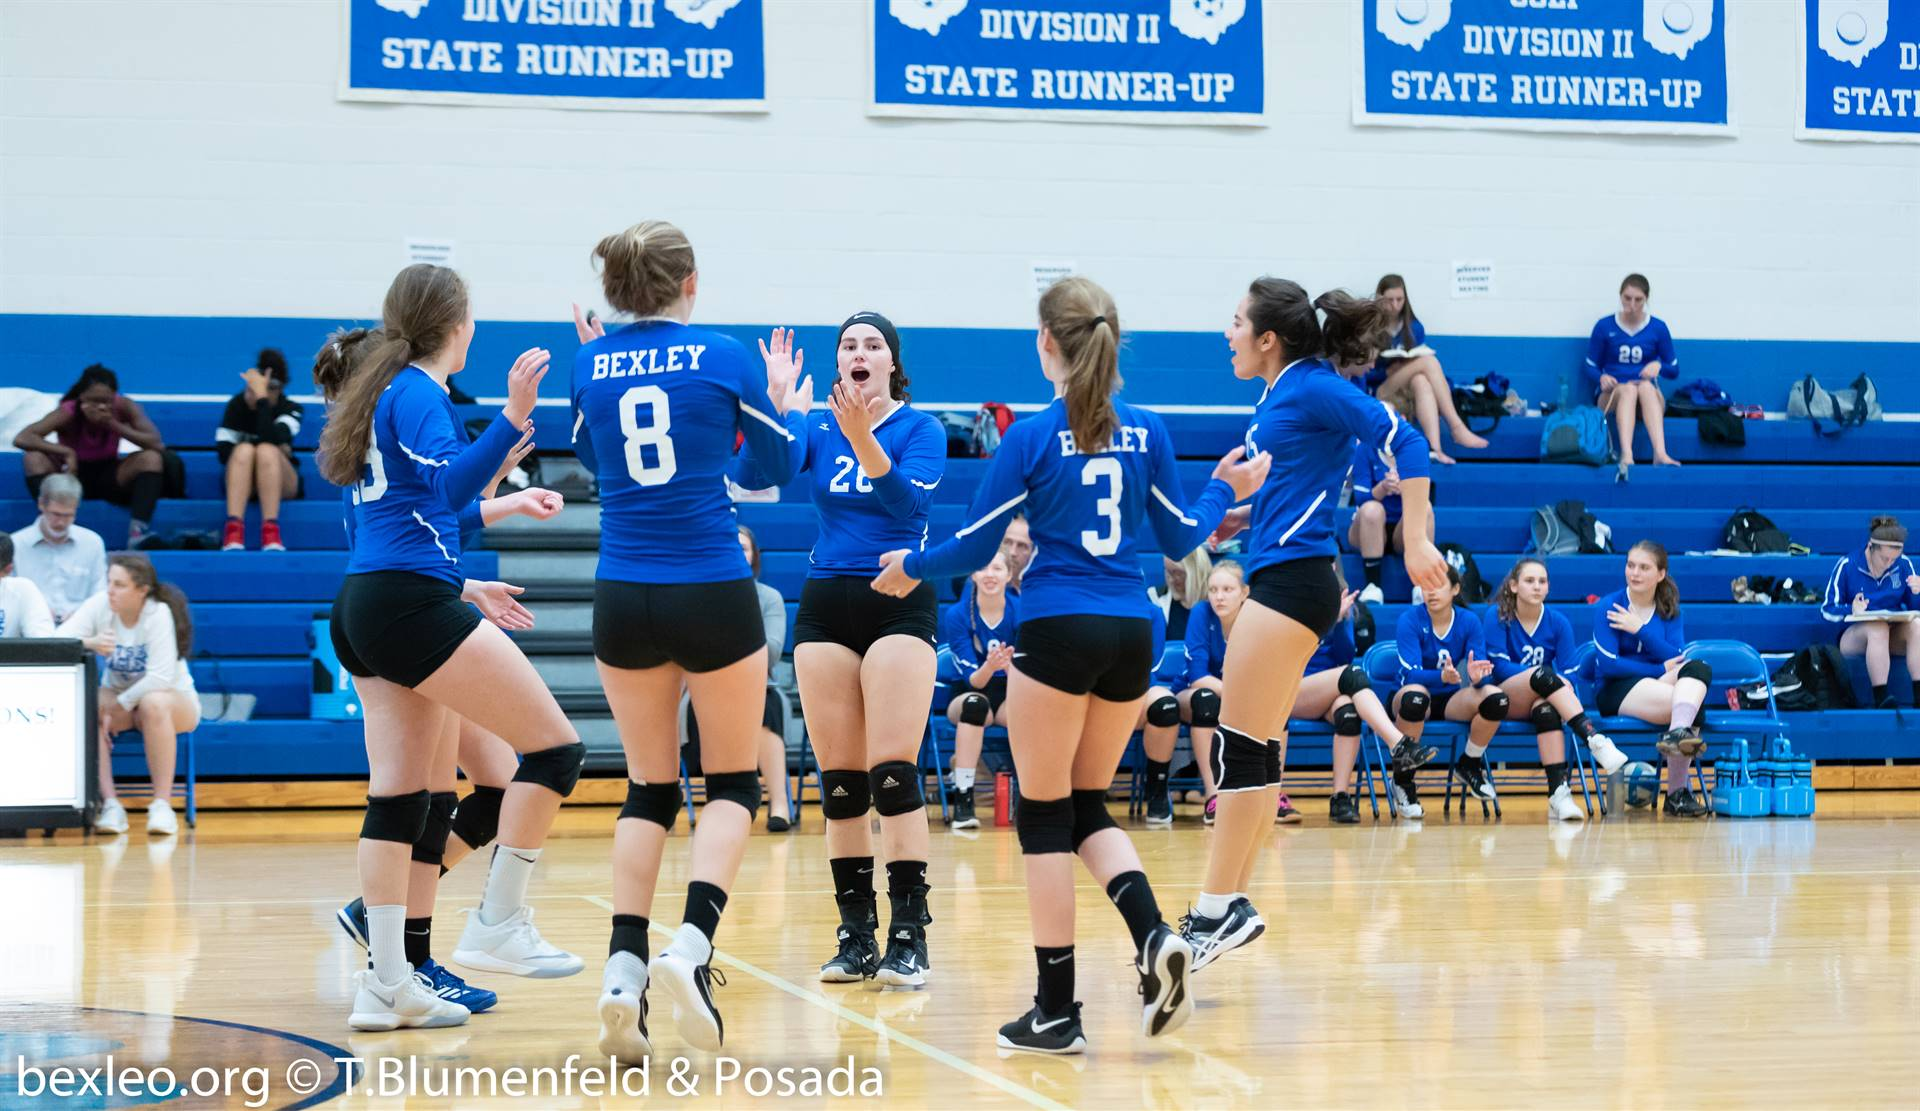 Volleyball players celebrating a point